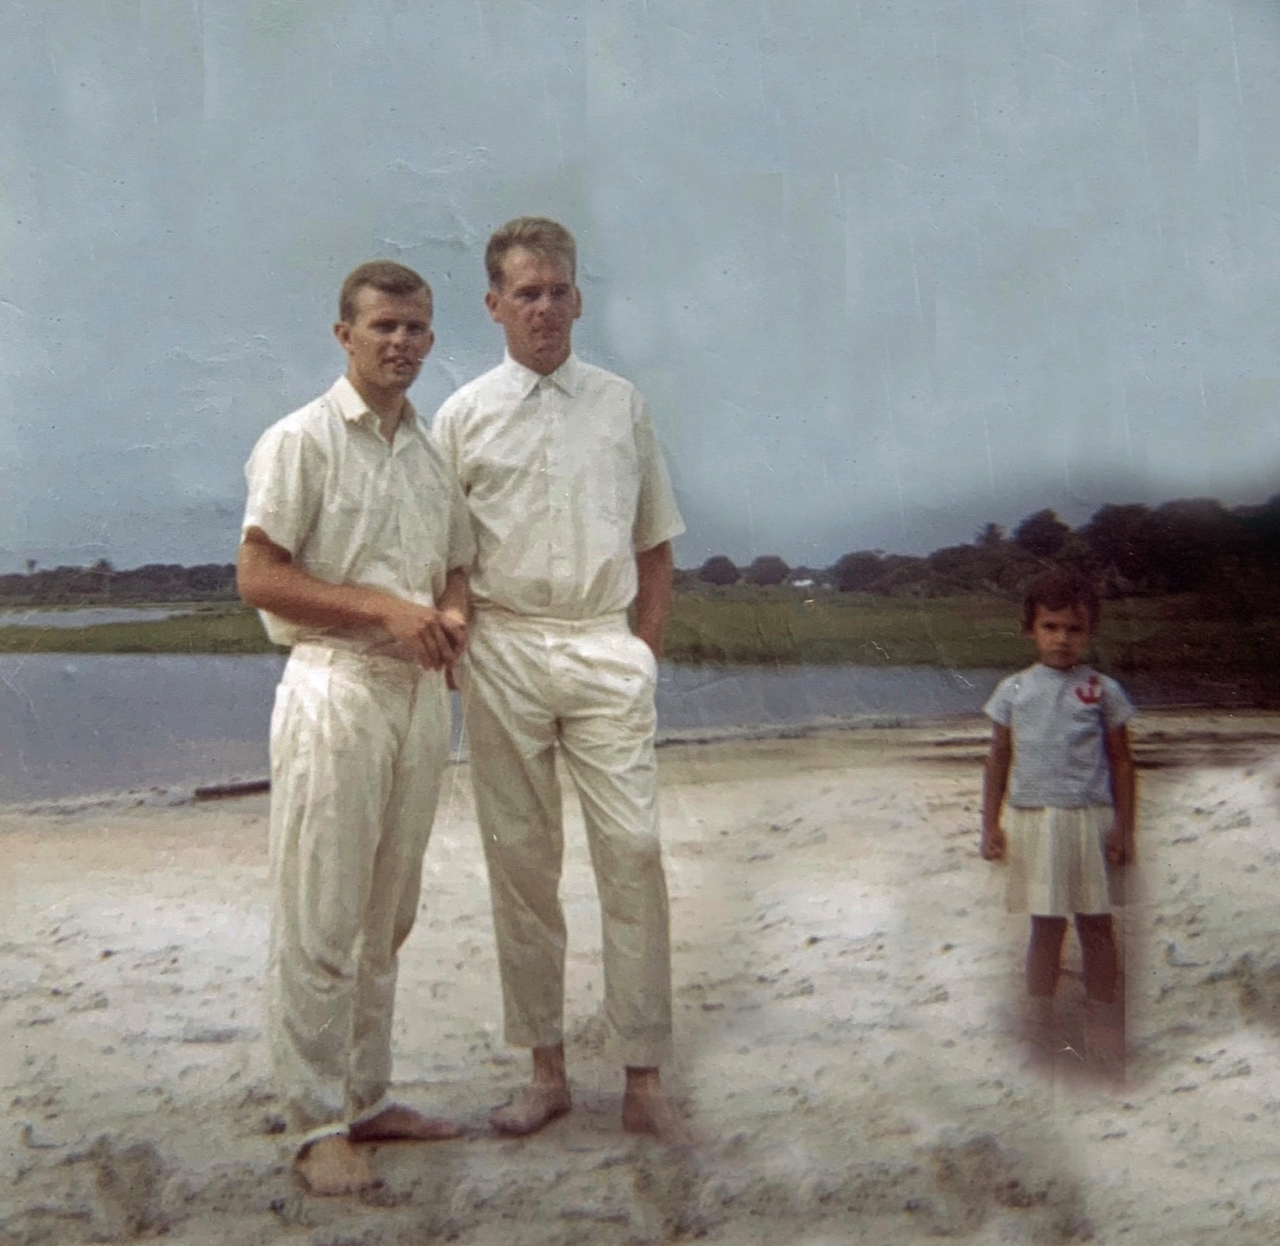 Elder John Beck, left, and Carlos Cintra, middle, stand at the edge of Lake Messejana in Fortaleza, Brazil, prior to the latter's baptism on Dec. 31, 1966.